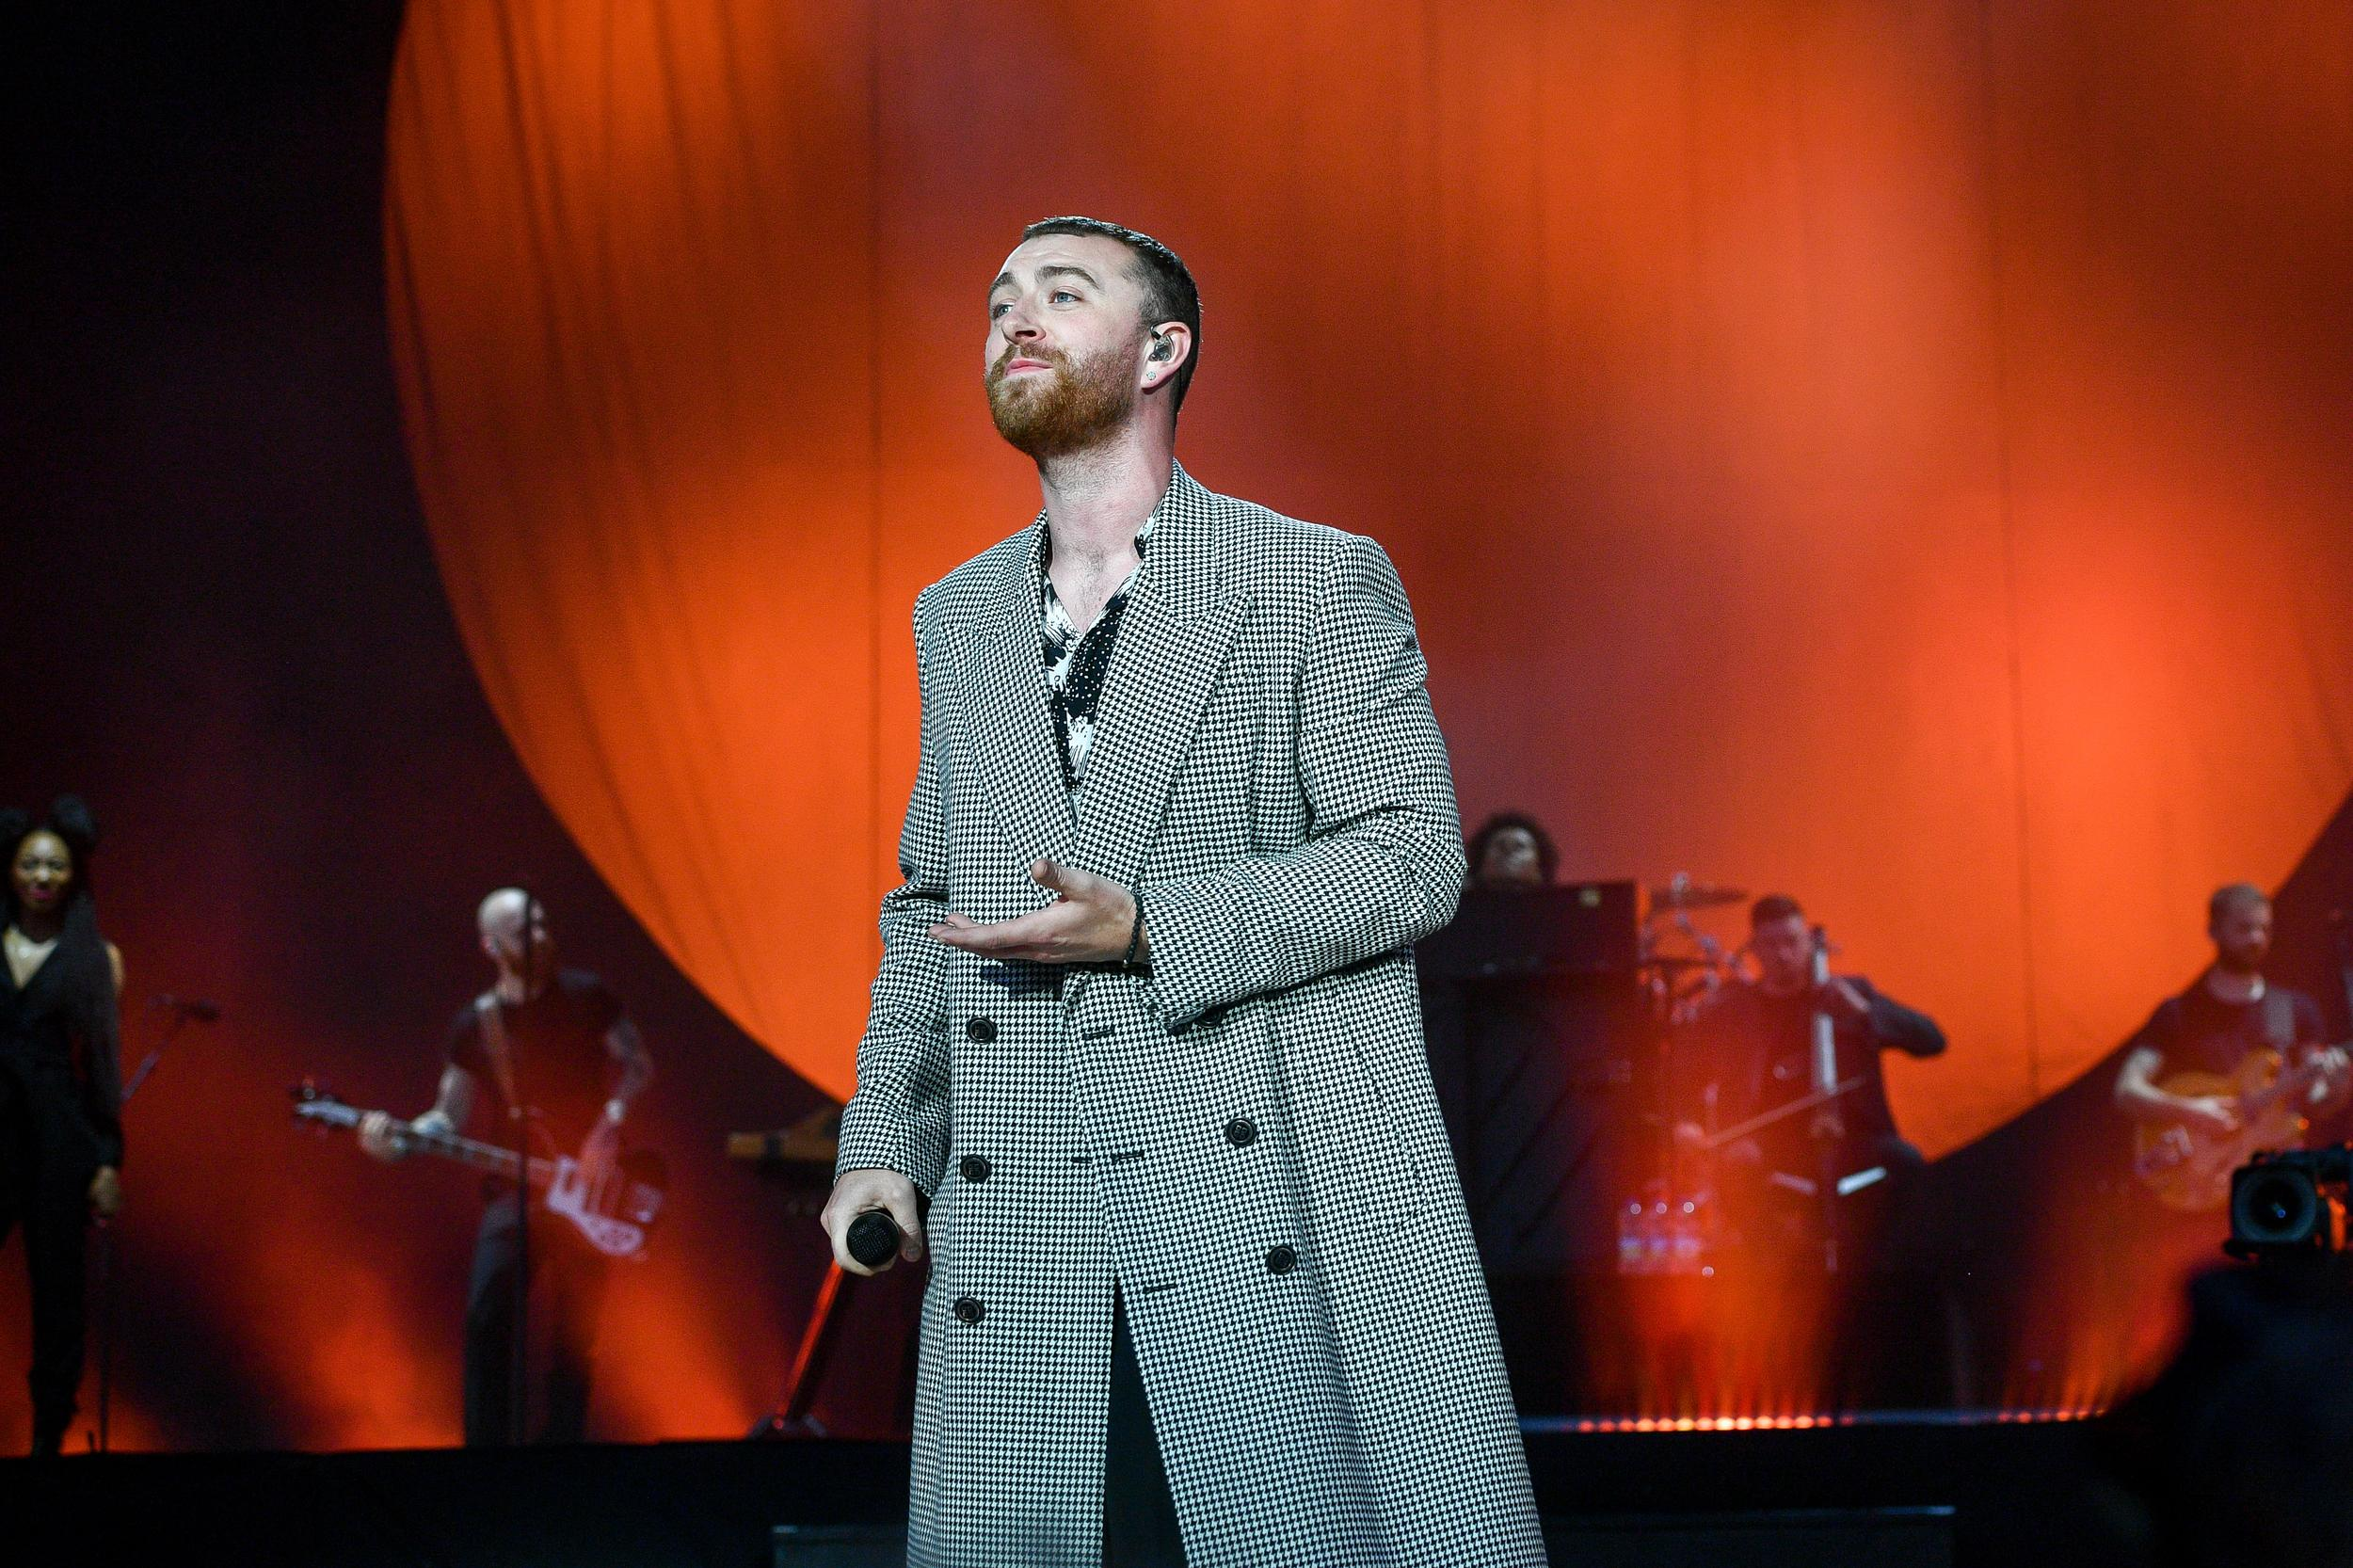 Sam Smith performs during the first day of BBC Radio 1's Biggest Weekend at Singleton Park, Swansea.